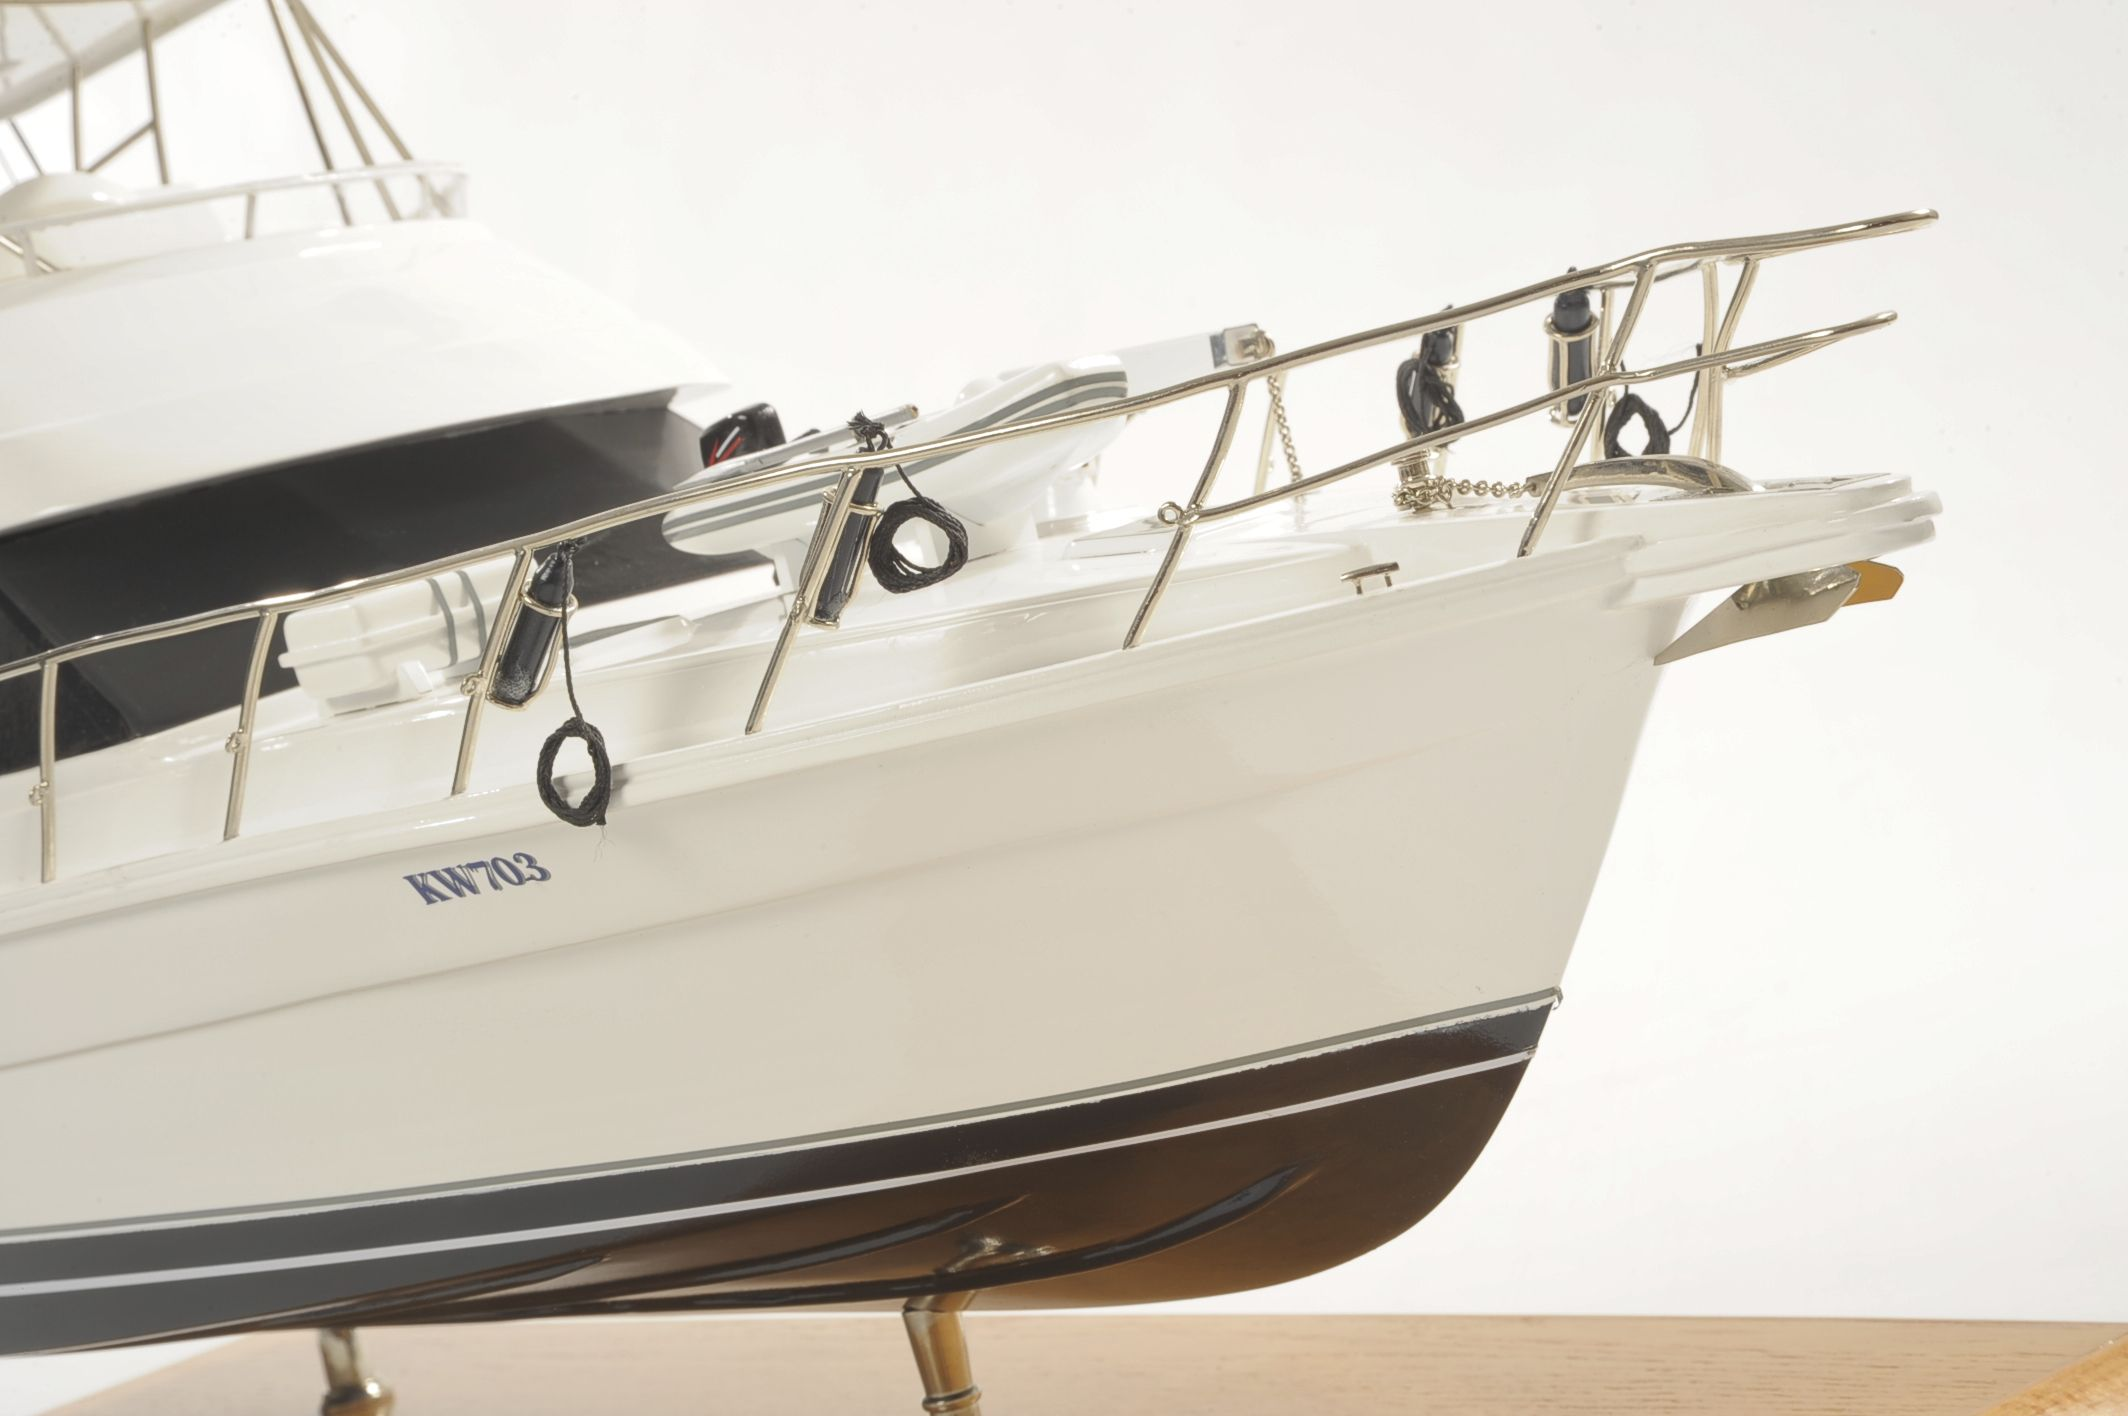 1517-8957-Rivera-45-Model-Boat-Time-Out-2